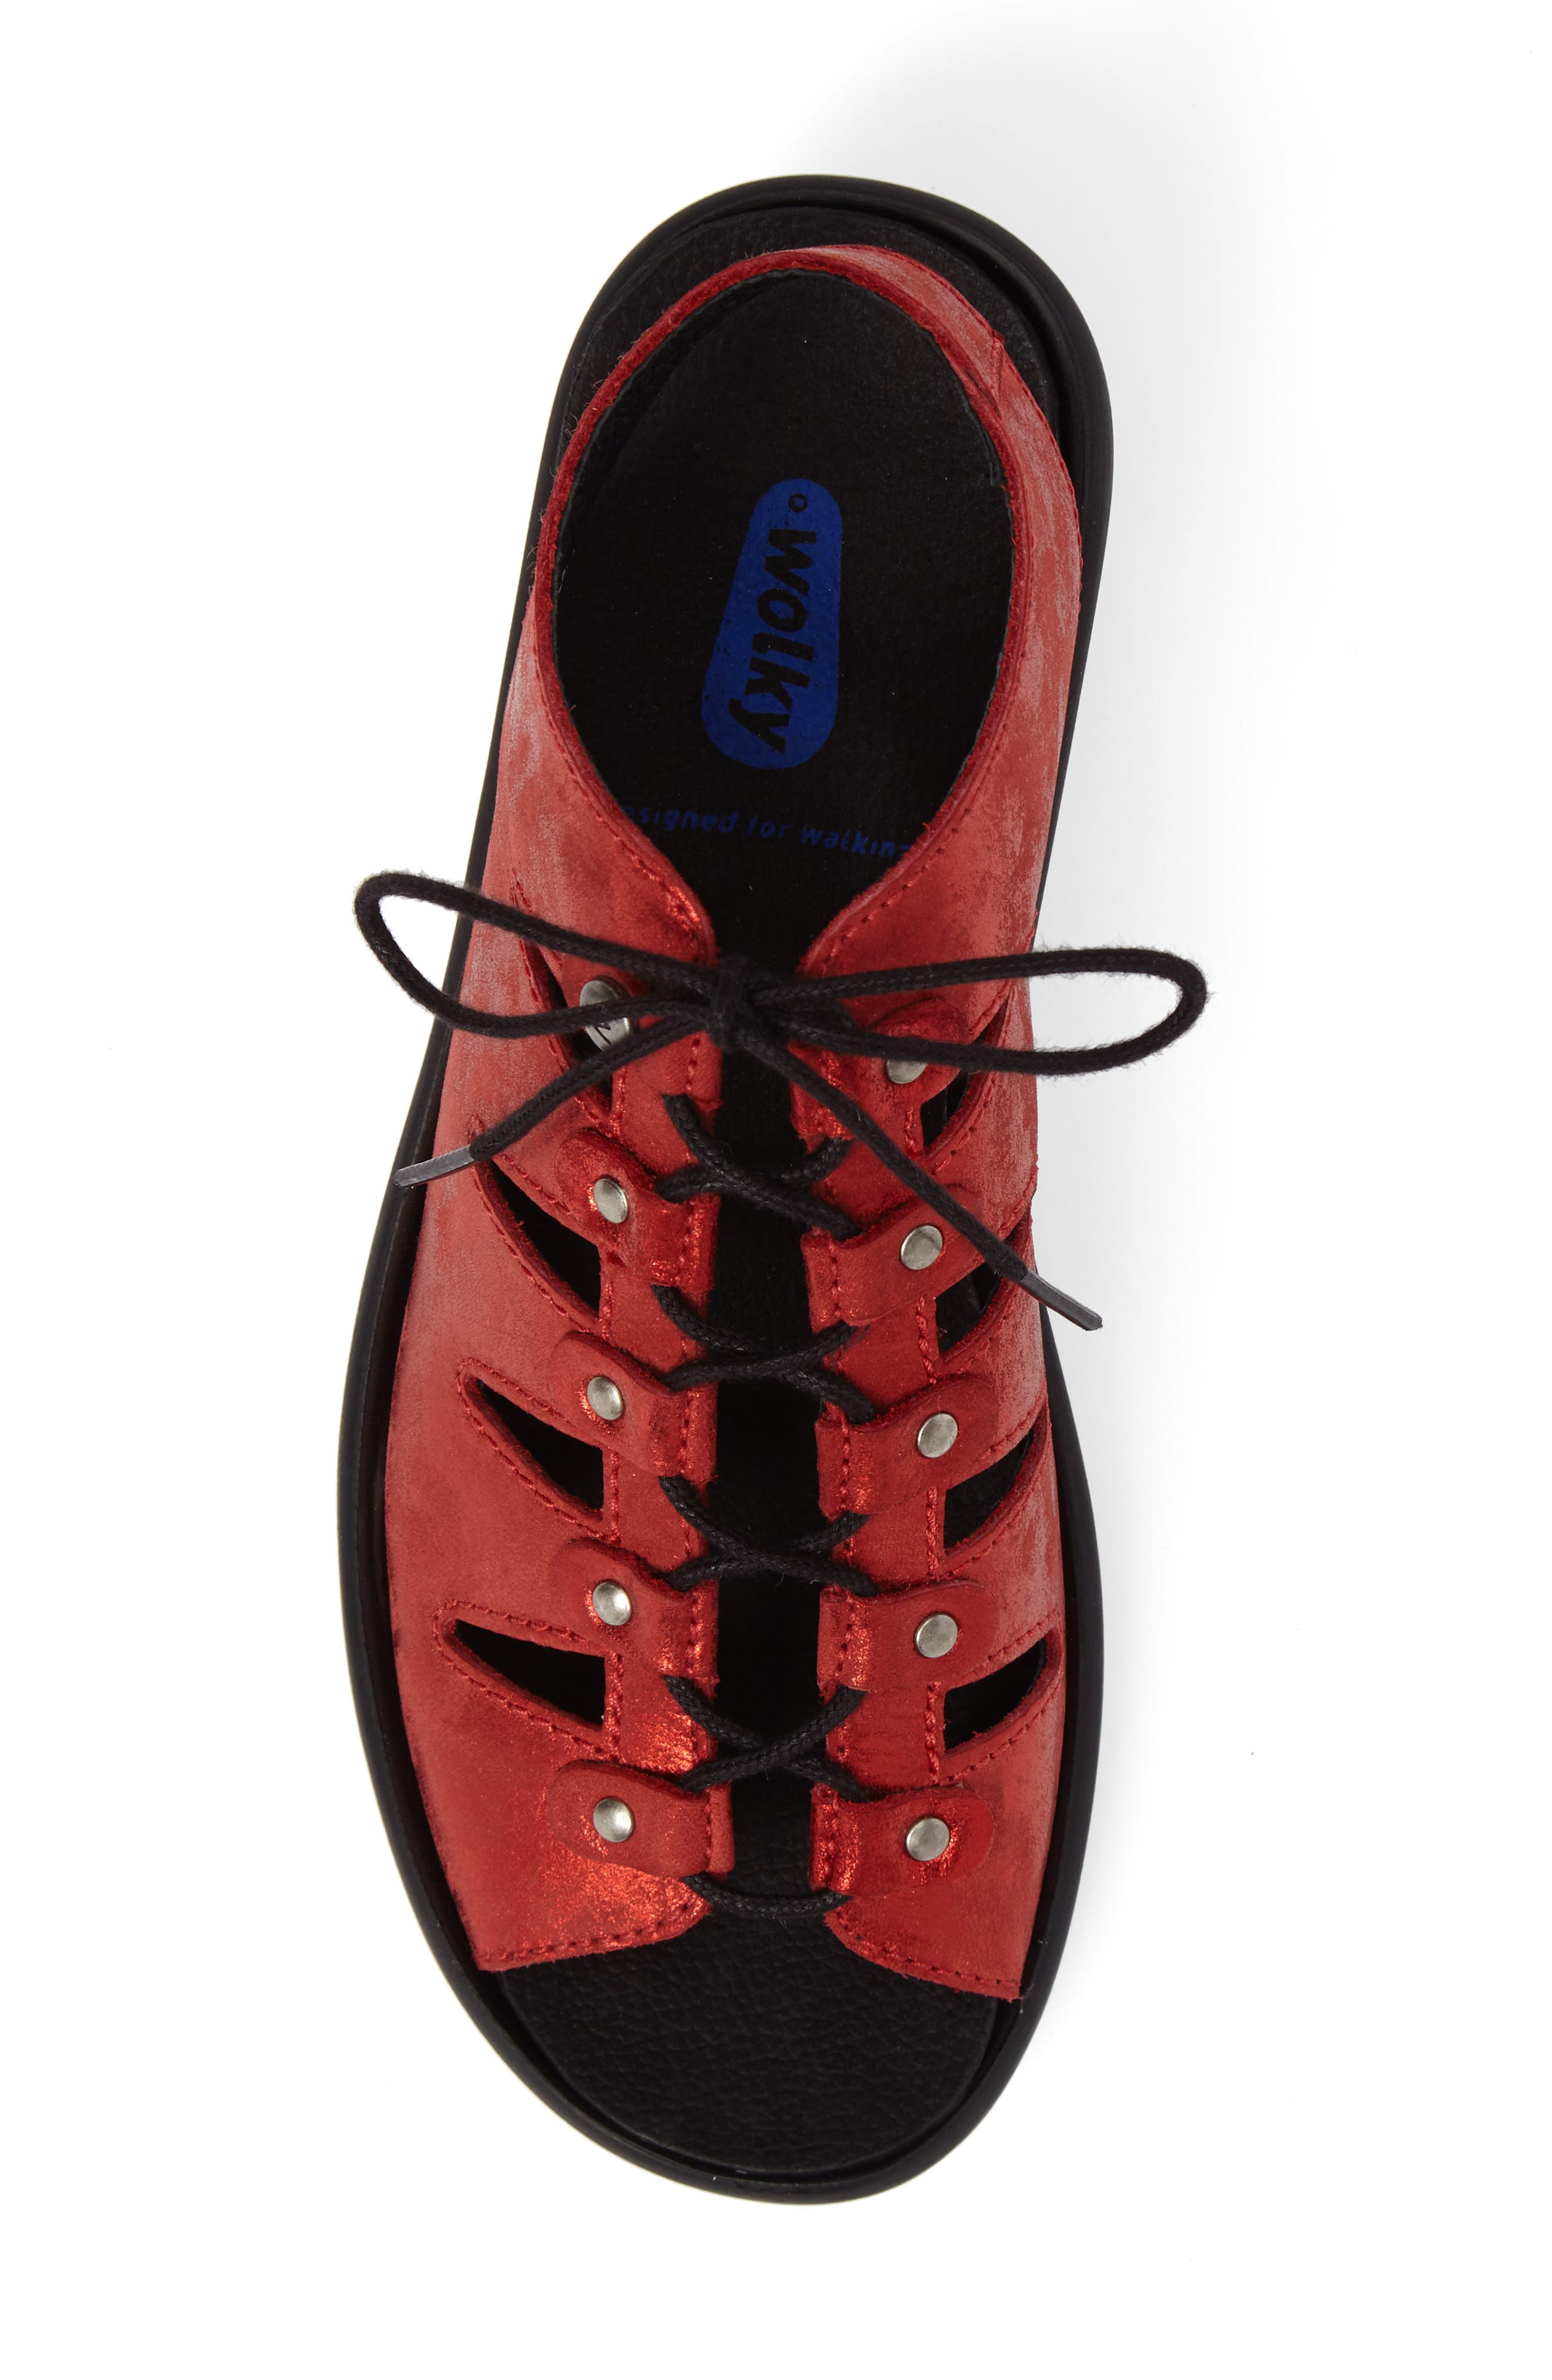 Arena Sandal,                             Alternate thumbnail 5, color,                             Red Nubuck Leather